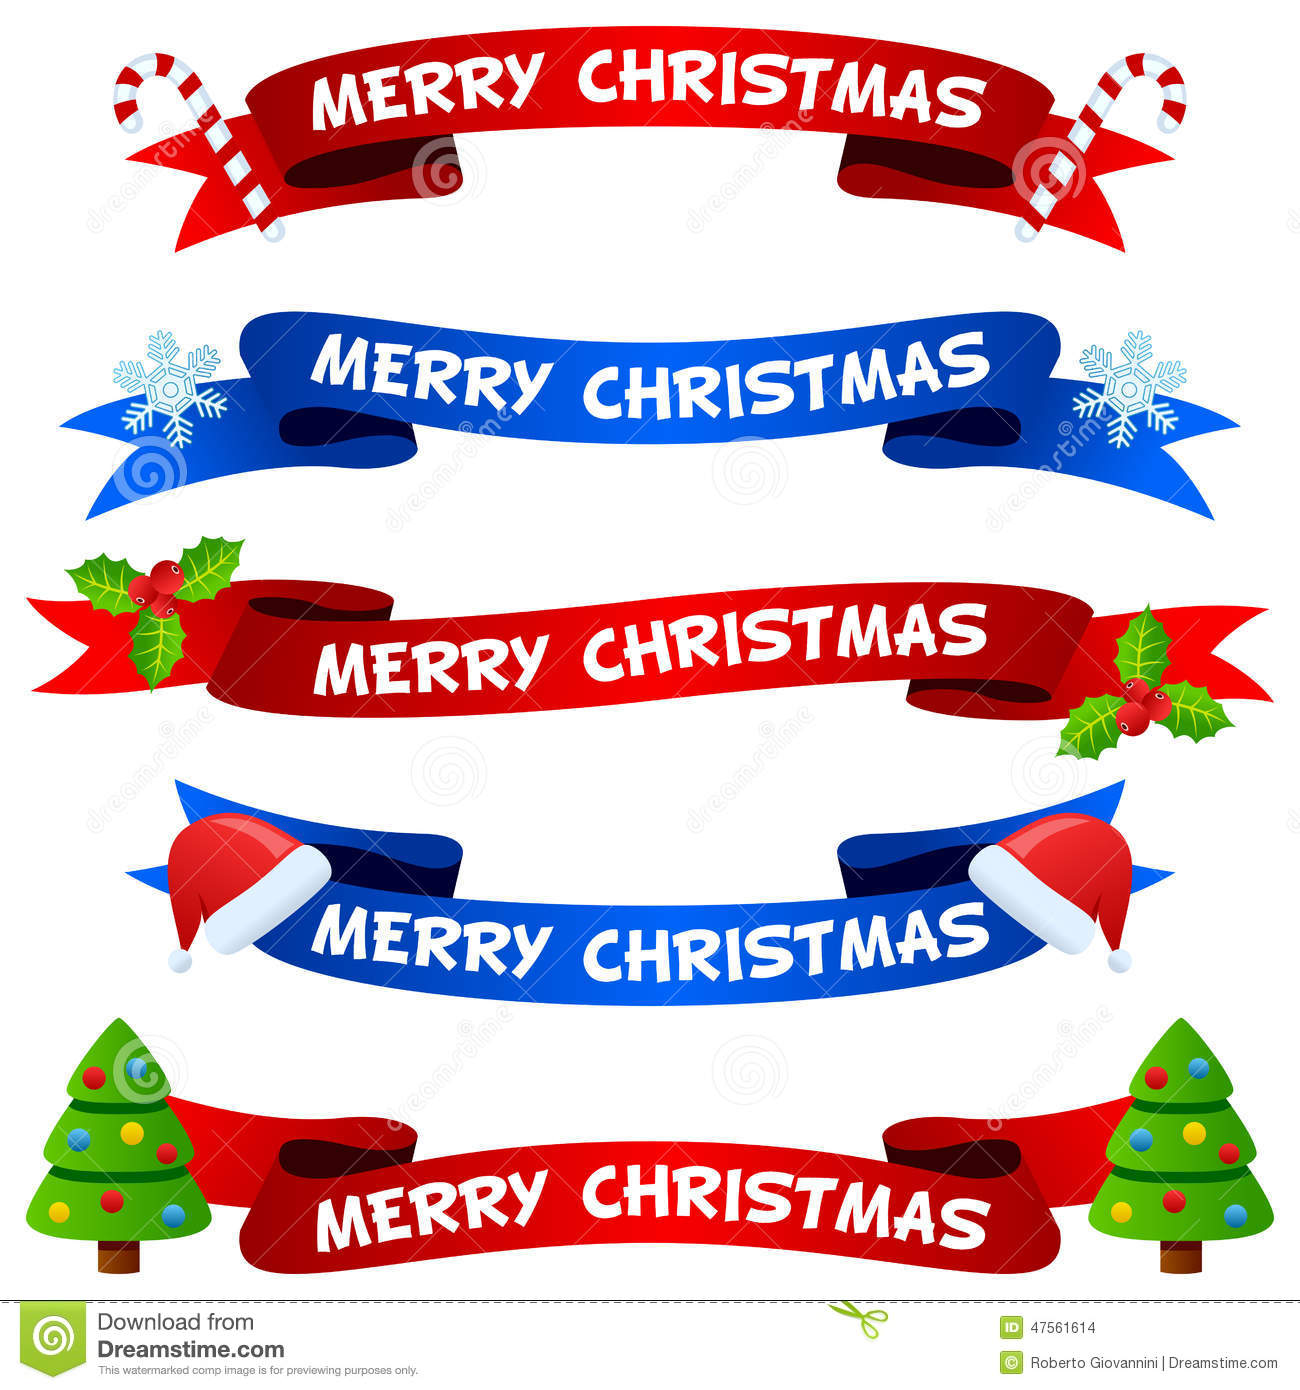 Merry Christmas Ribbon Clipart.Merry Christmas Ribbons Or Banners Set Stock Vector